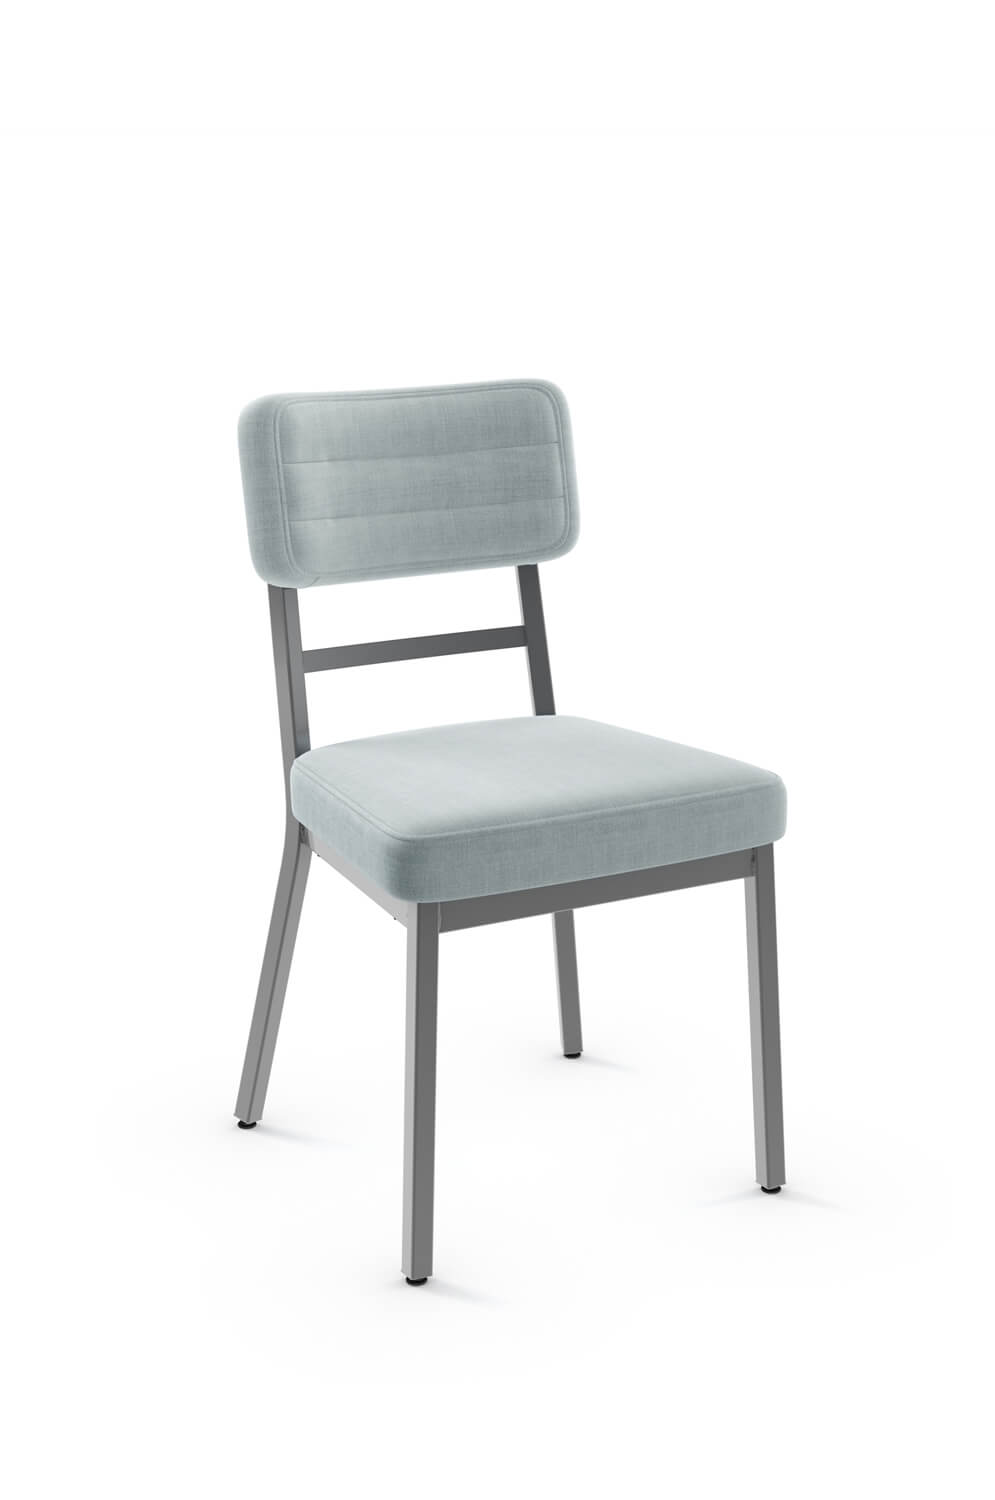 Phoebe Dining Chair with Upholstered Back and Seat